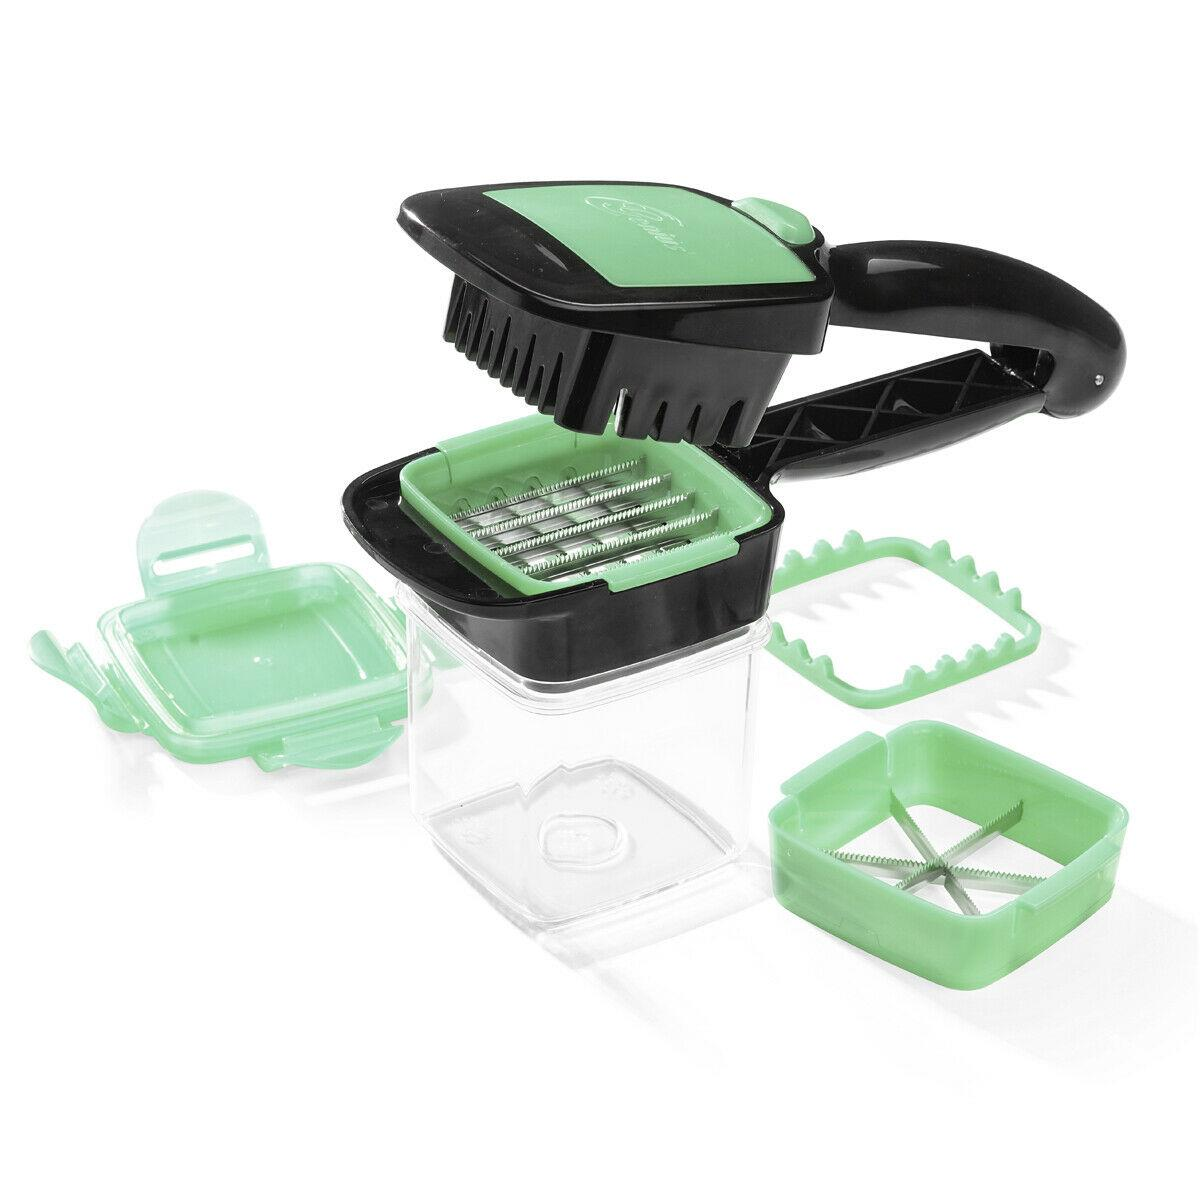 JML-Nicer-Dicer-Quick-5-in-1-Hand-Held-Chopping-Slicing-and-Dicing-Machine miniatuur 4